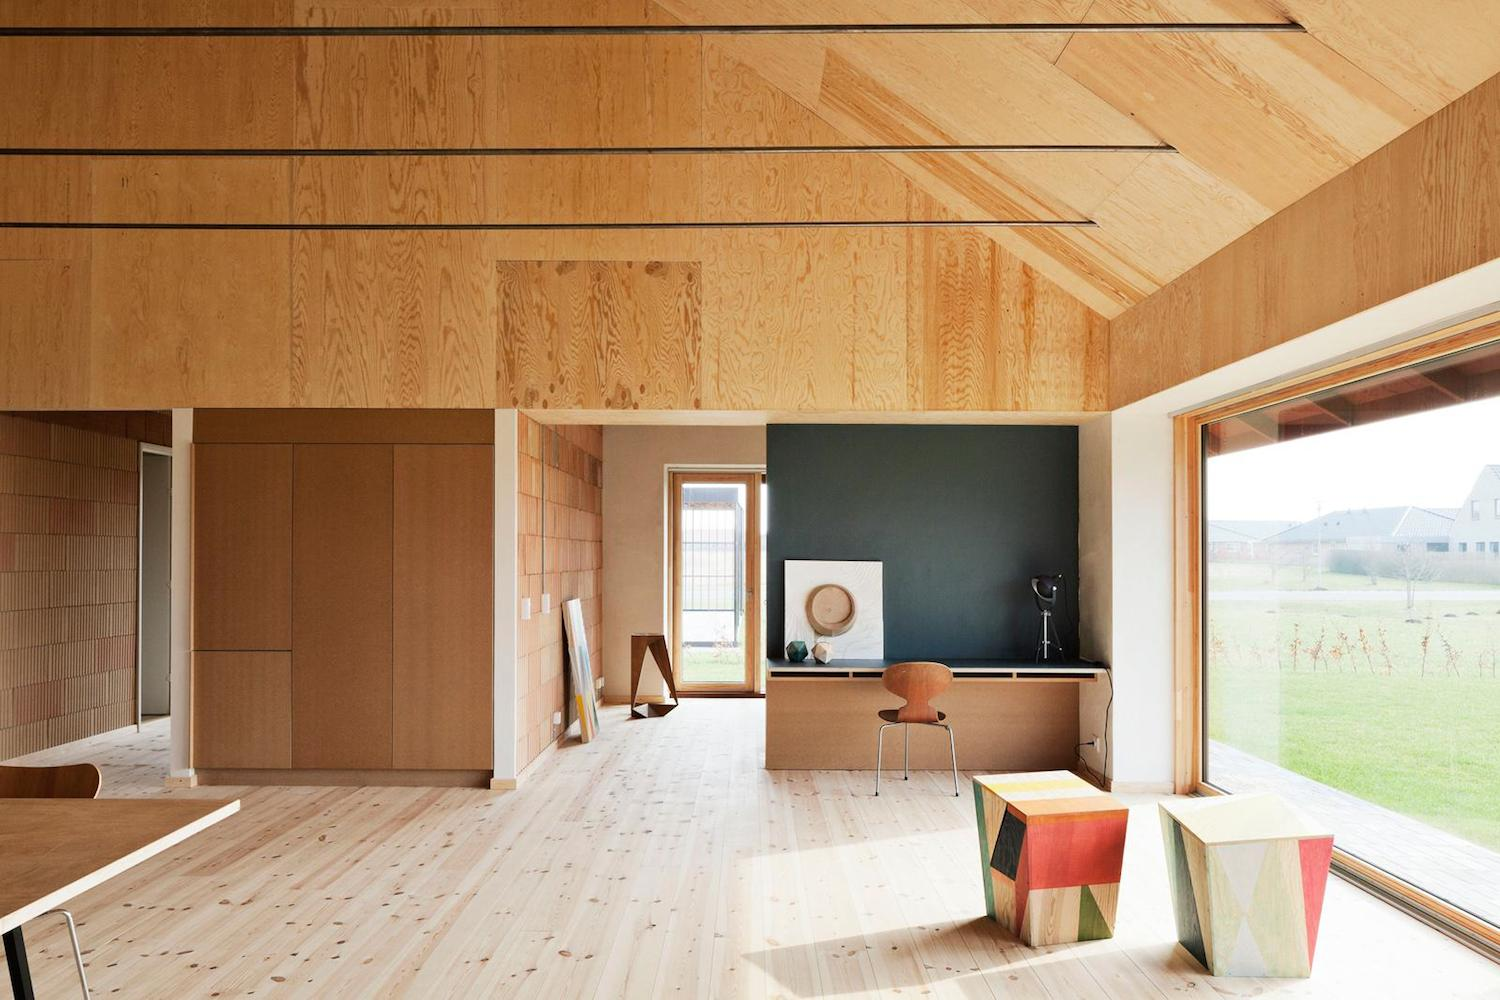 Maison d'architecte en bois contemporaine